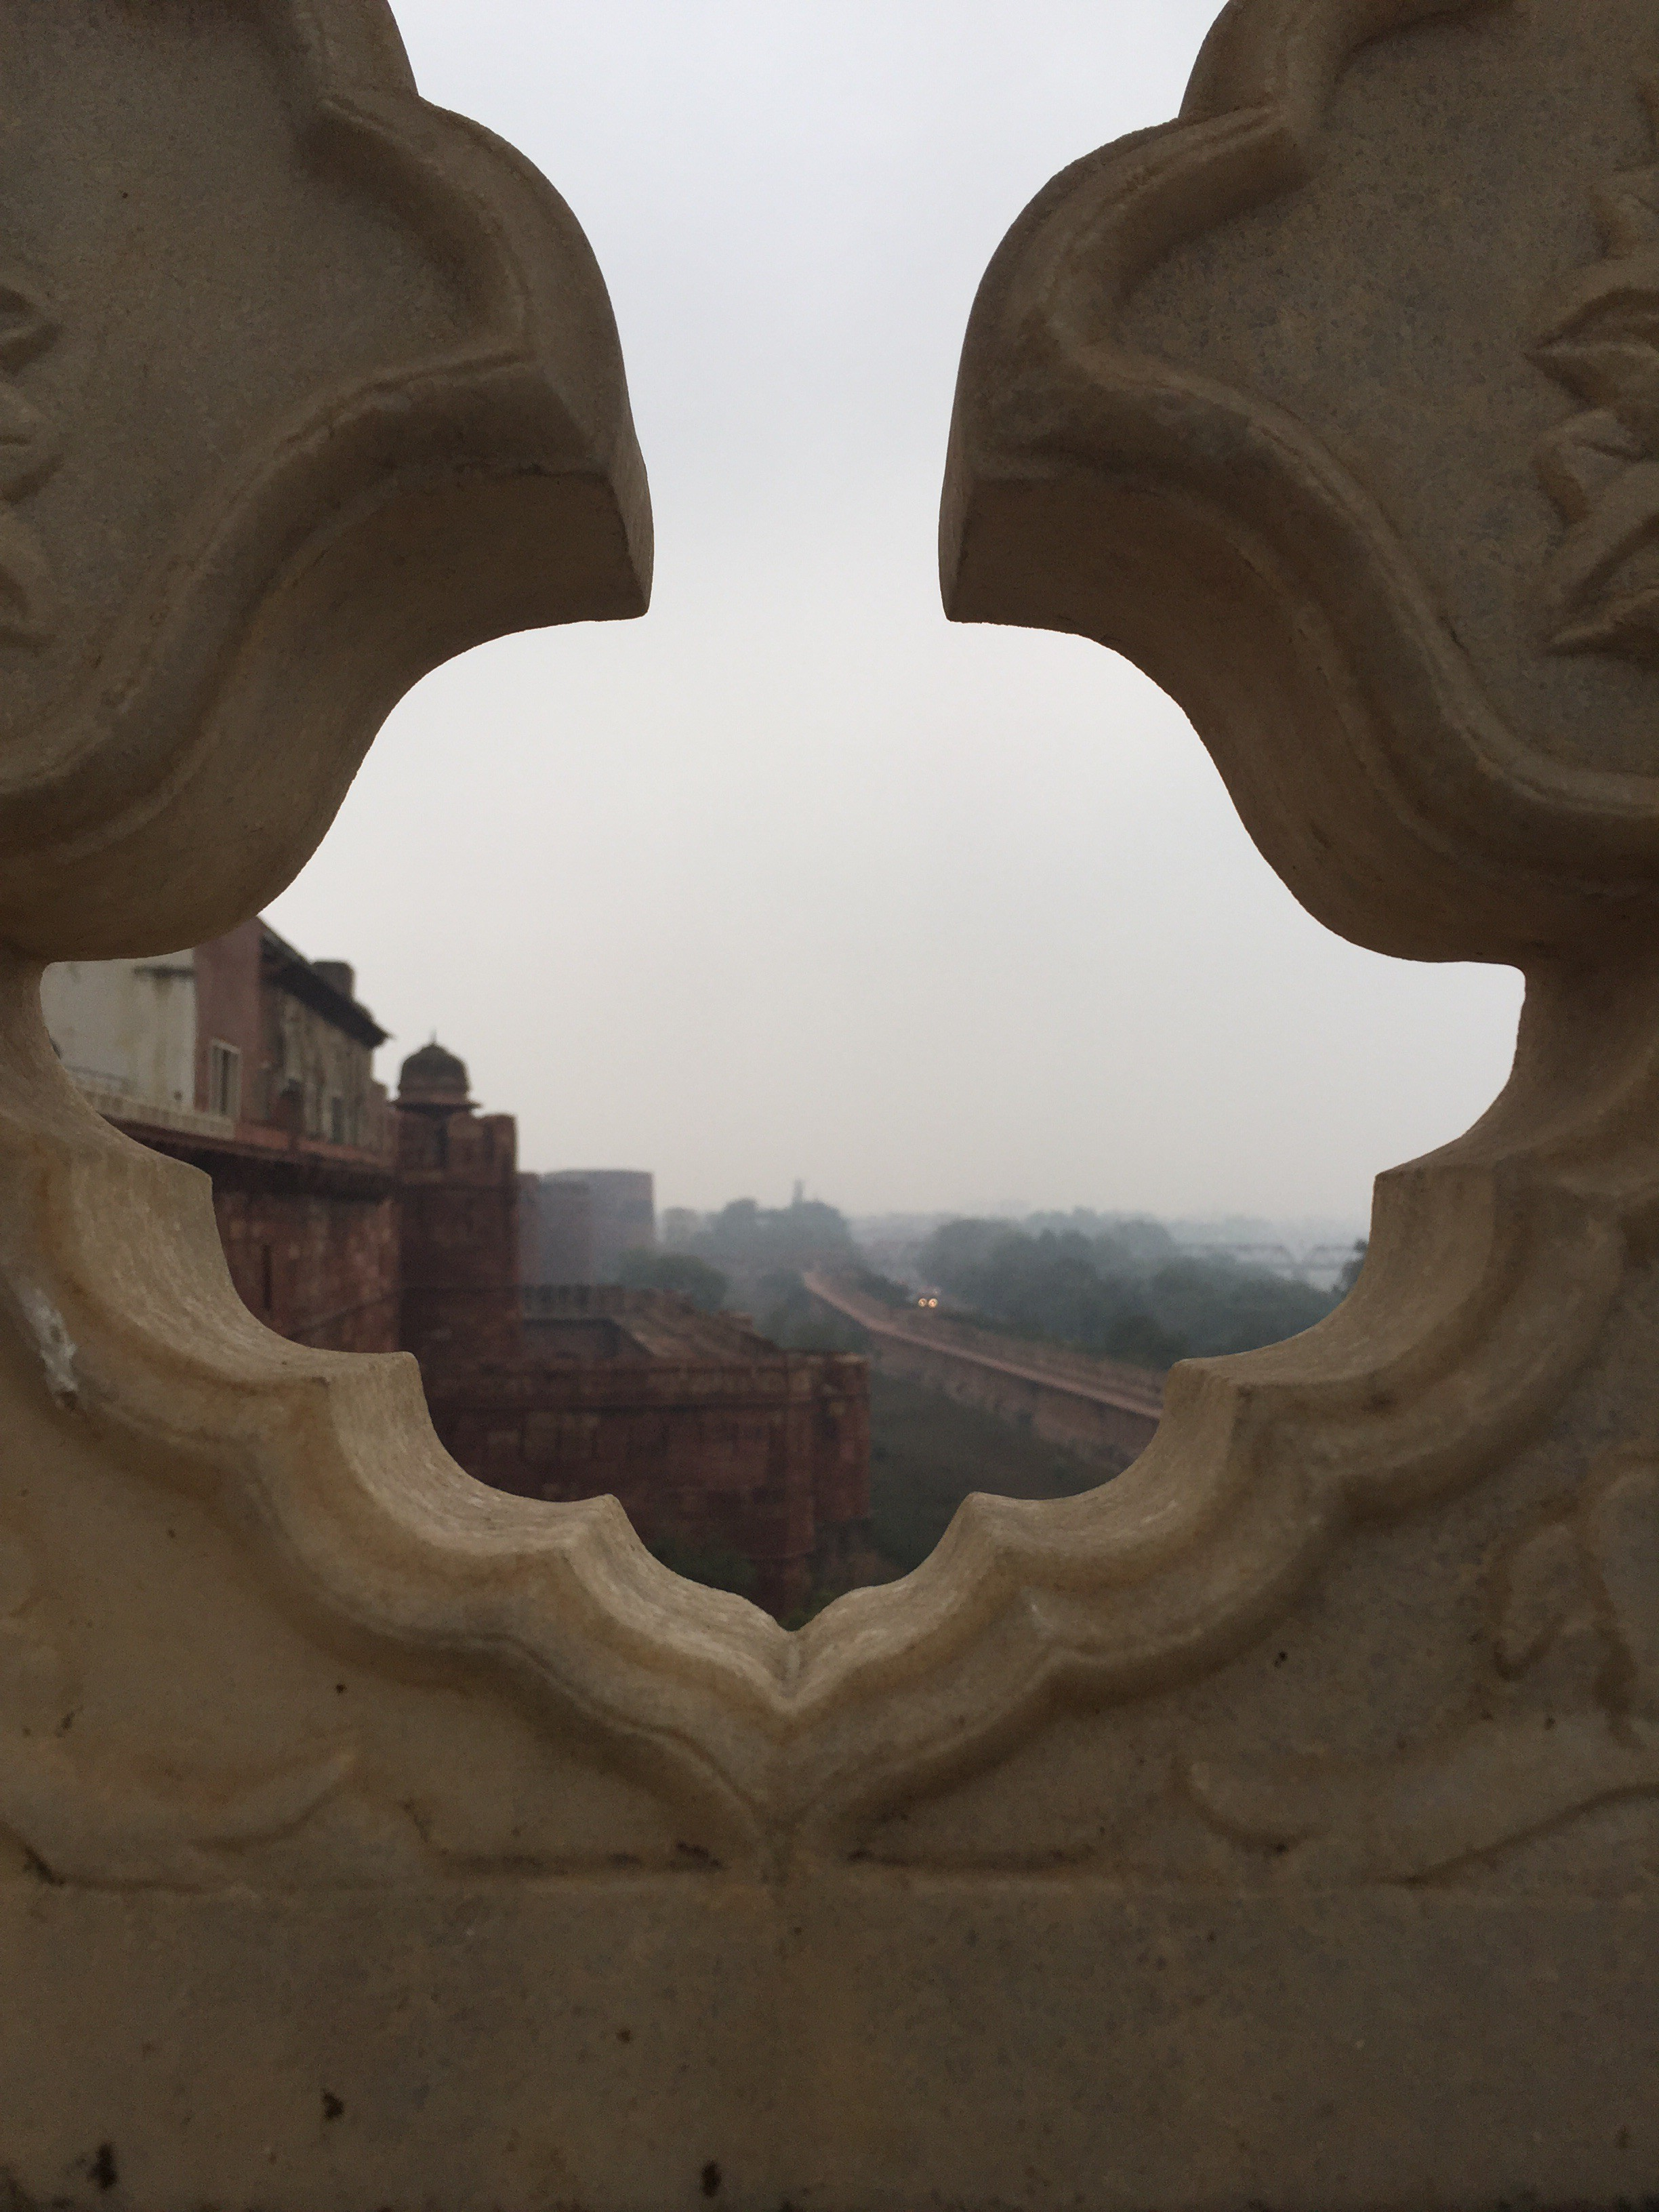 Peeking out at the Agra Fort